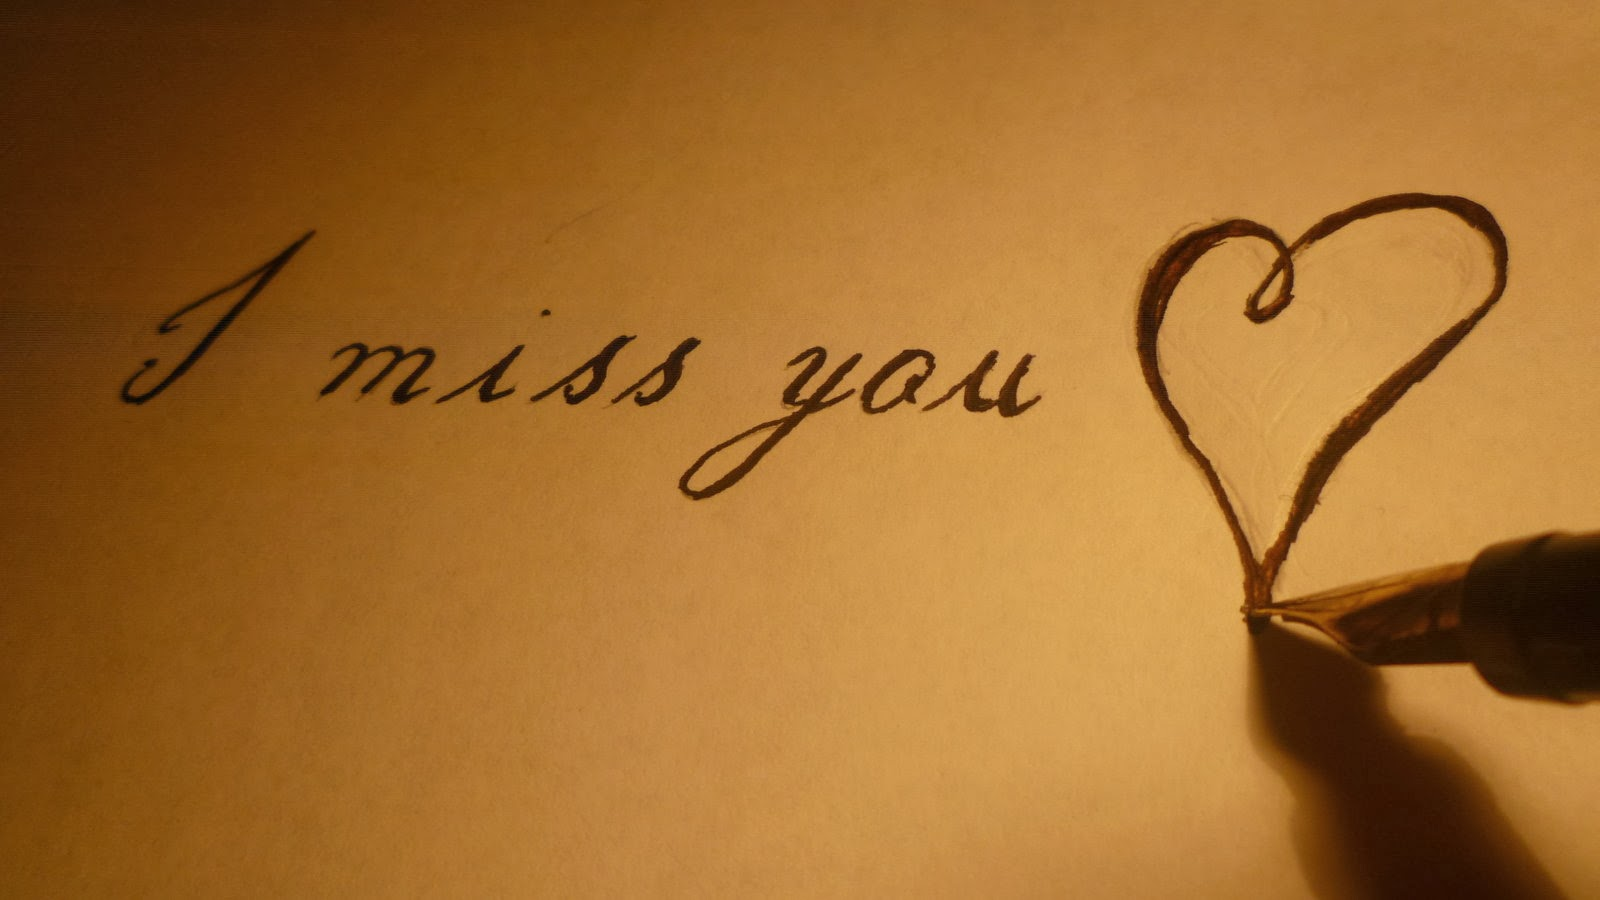 I miss u pictures for her